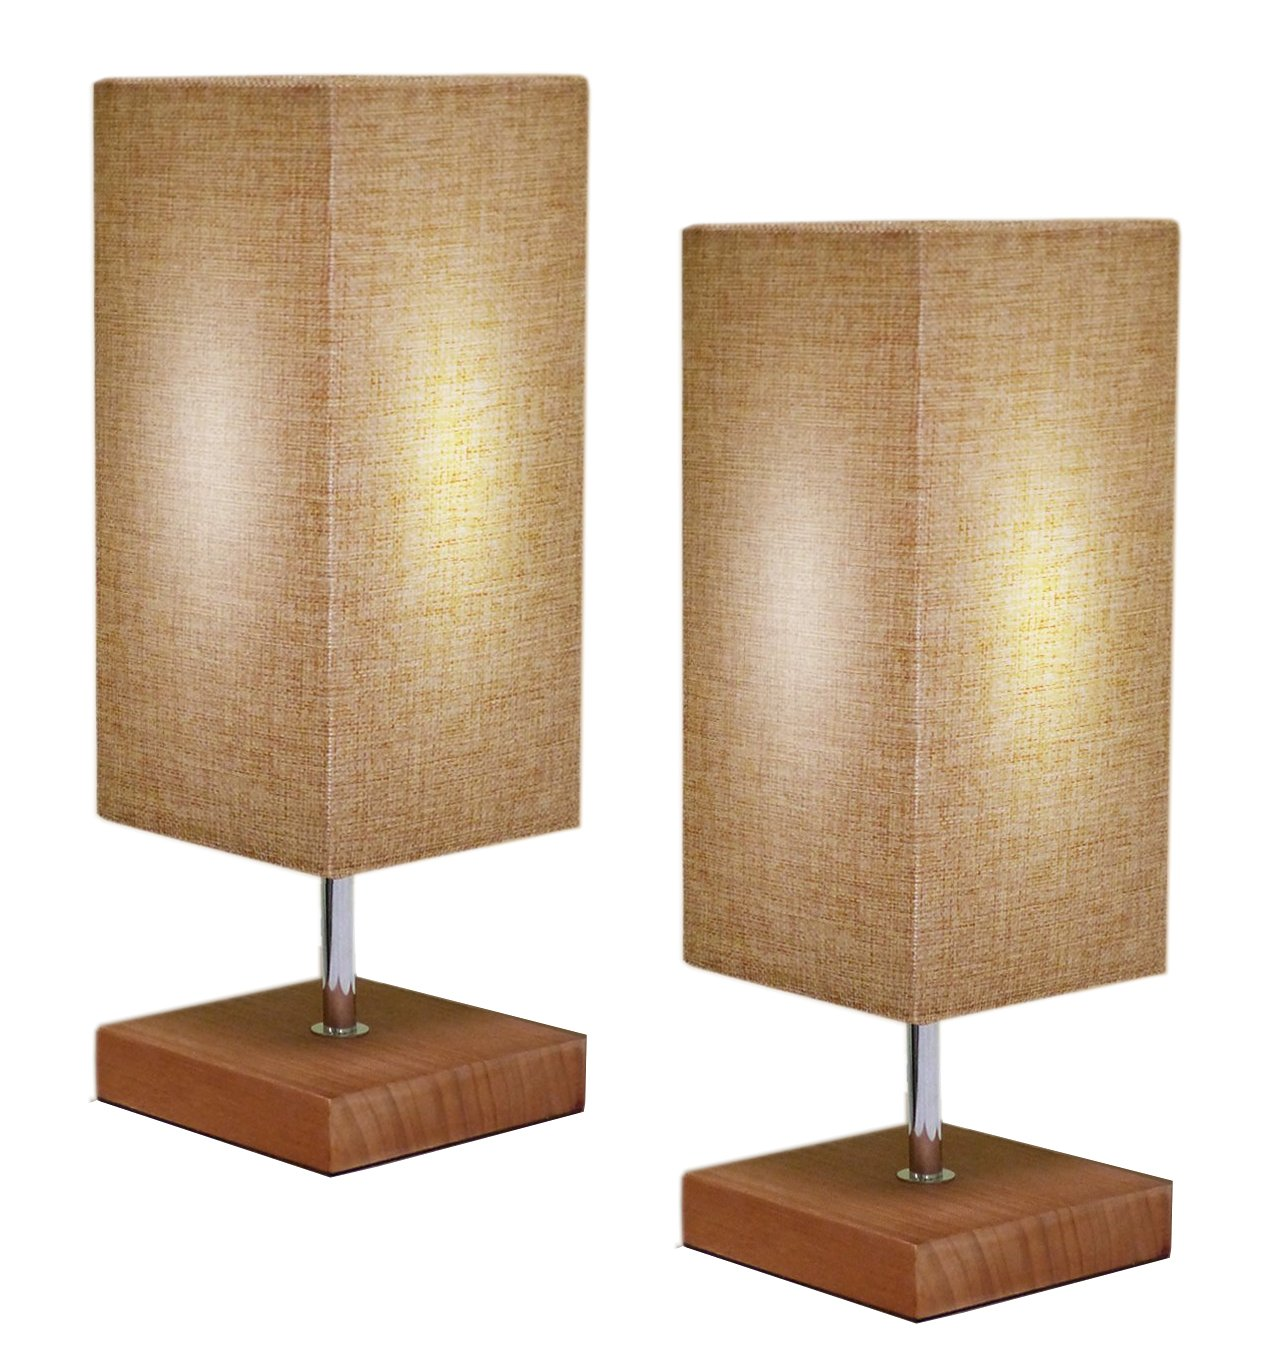 Set of 2 Modern Simple Square Minimalist Design Bedside Nightstand Table Lamp – Stained Solid Wood Base Beautiful Linen Woven Fabric Shade, By Ella Gancz